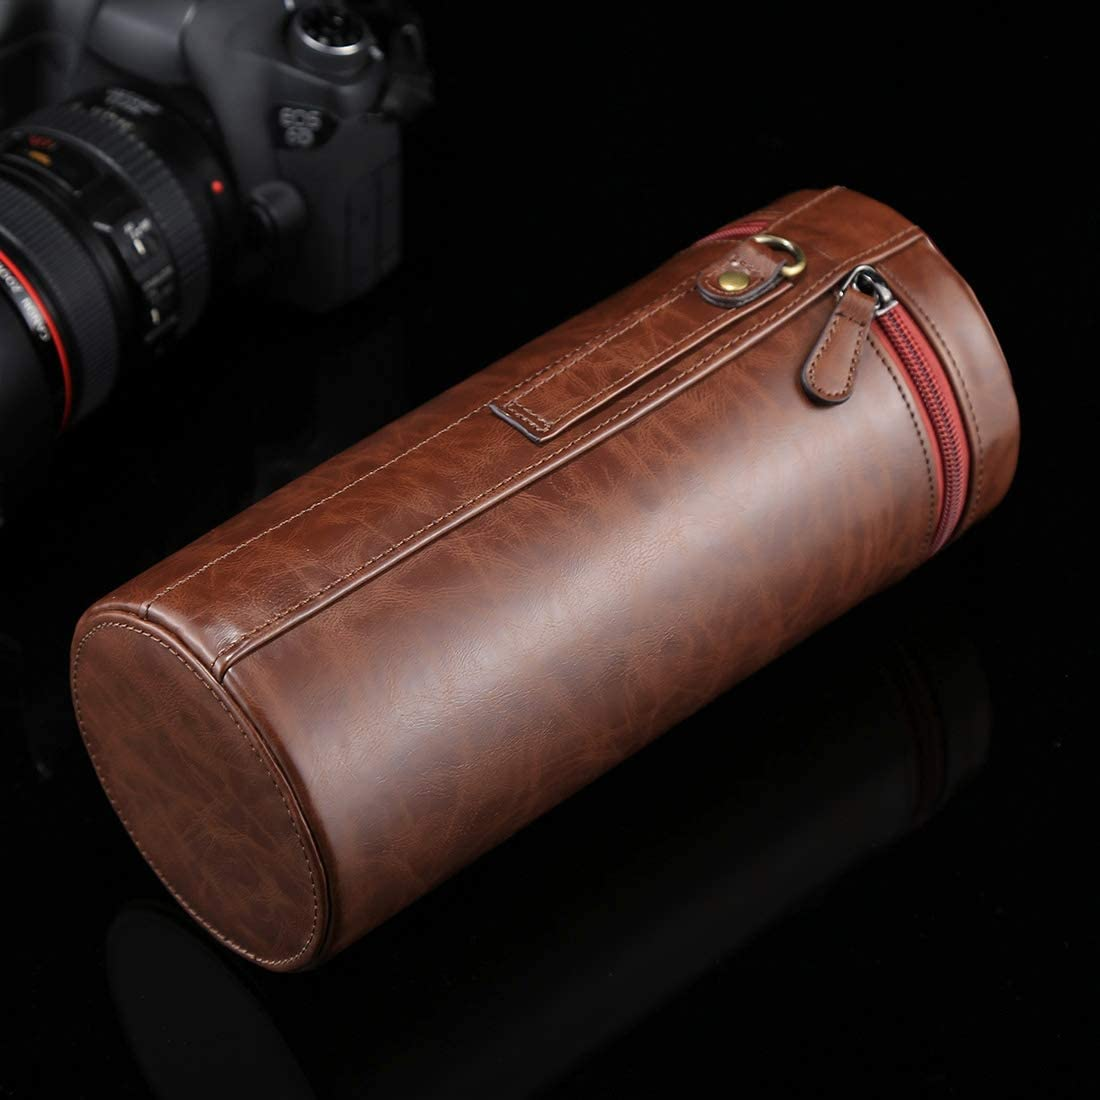 Size: 24.510.510.5cm Black Color : Black CHENYANTUB Camera Accessories Extra Large Lens Case Zippered PU Leather Pouch Box for DSLR Camera Lens